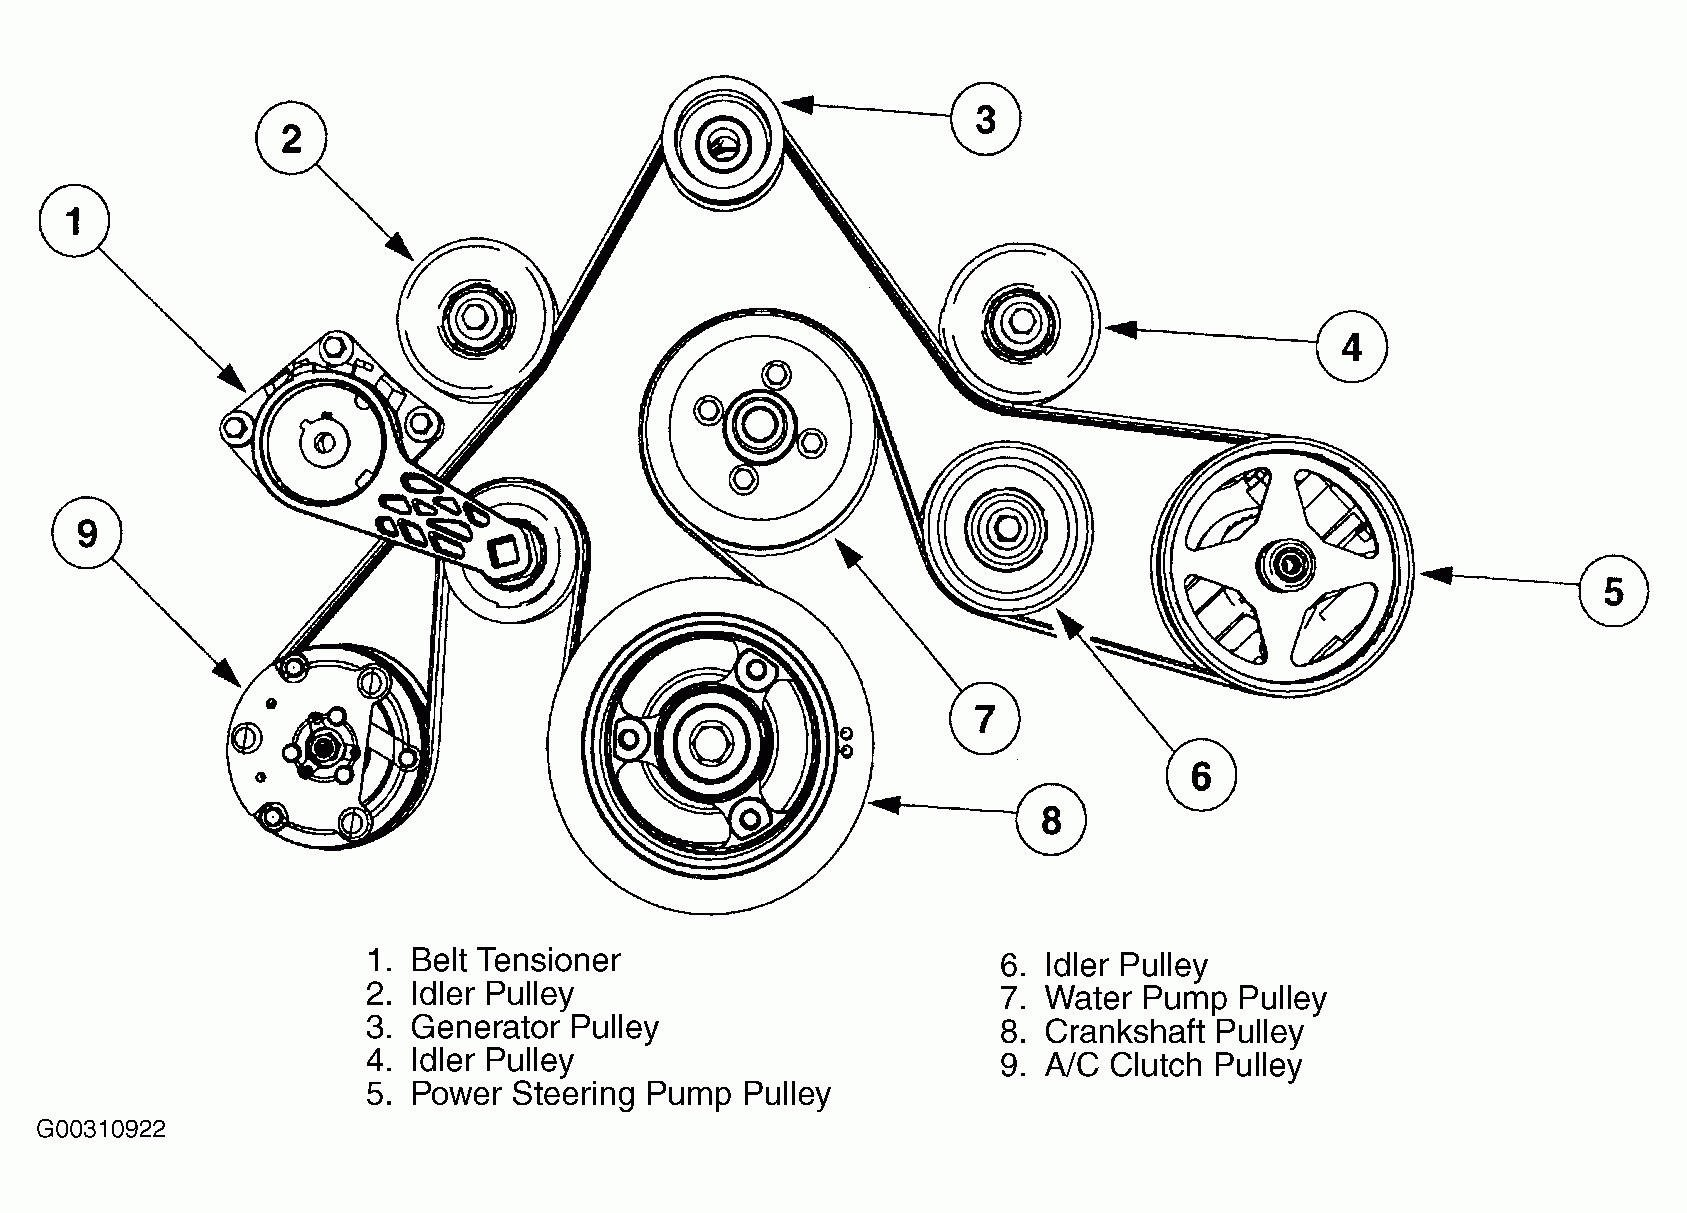 1999 ford Expedition Engine Diagram 2 ford 1 9 Engine Diagram Another Blog About Wiring Diagram • Of 1999 ford Expedition Engine Diagram 2